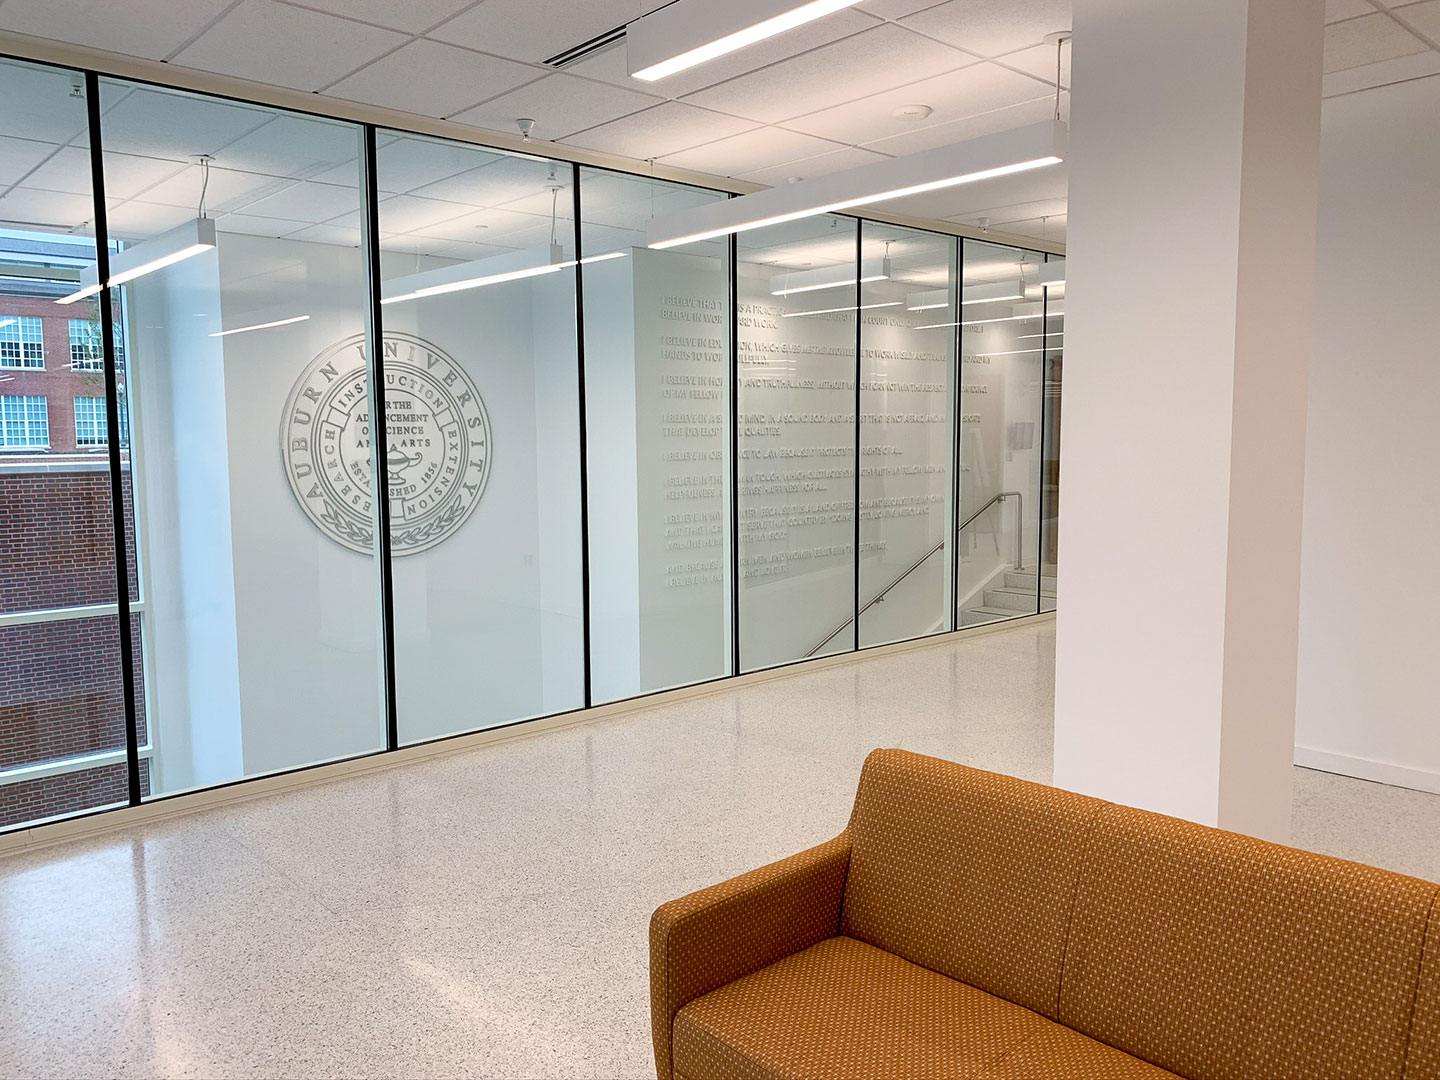 Dimensional Auburn creed wall and university seal through glass wall